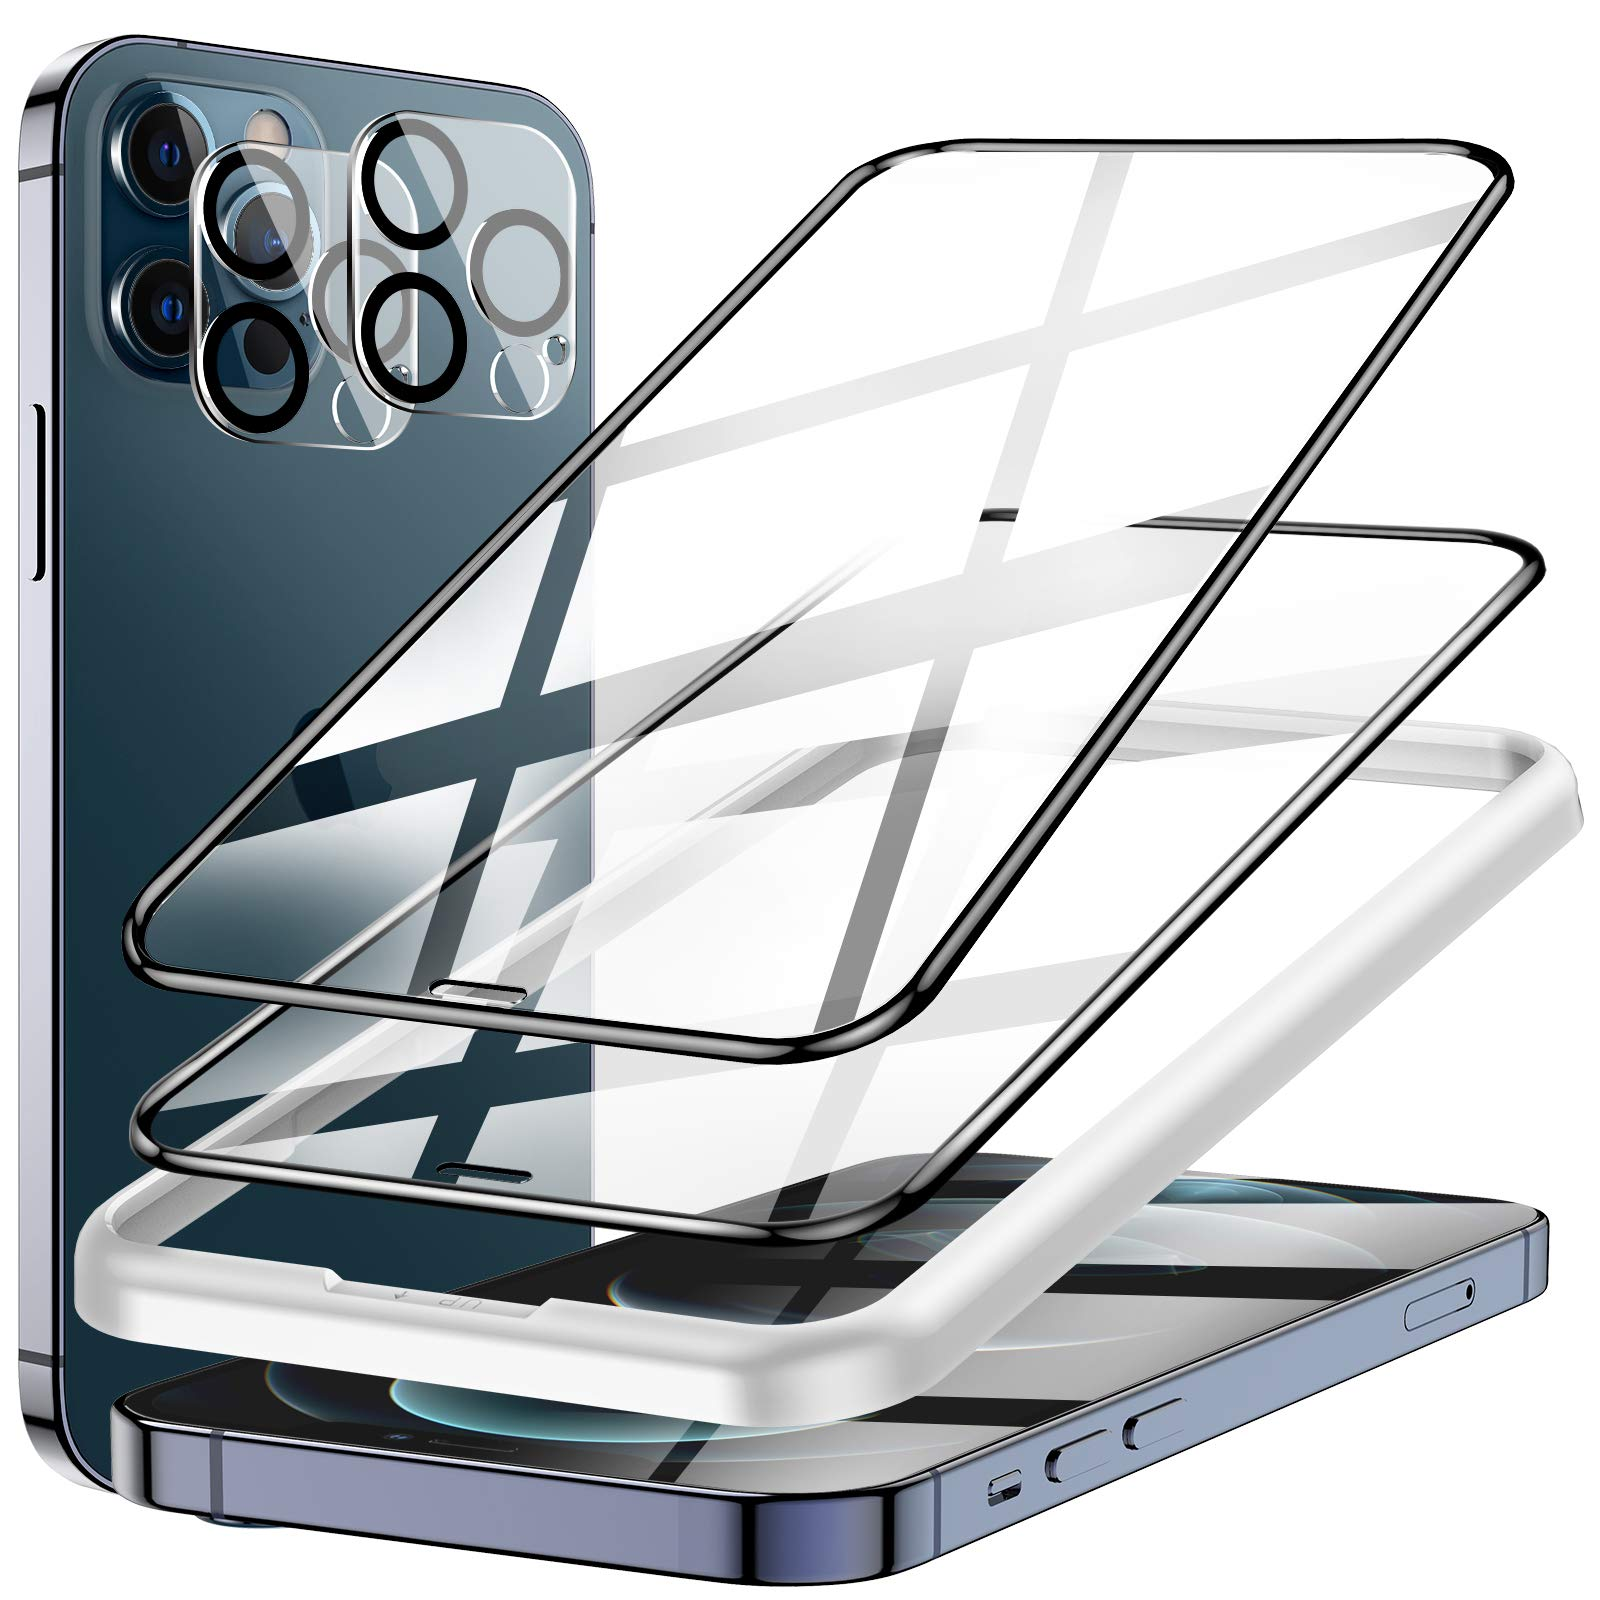 4 Pack LK 2 Pack Screen Protector + 2 Pack Camera Lens Protector Compatible with iPhone 12 Pro Max 6.7-inch, 9H Tempered Glass, Full Coverage, Shatterproof, Come with Easy Frame Installation Tray